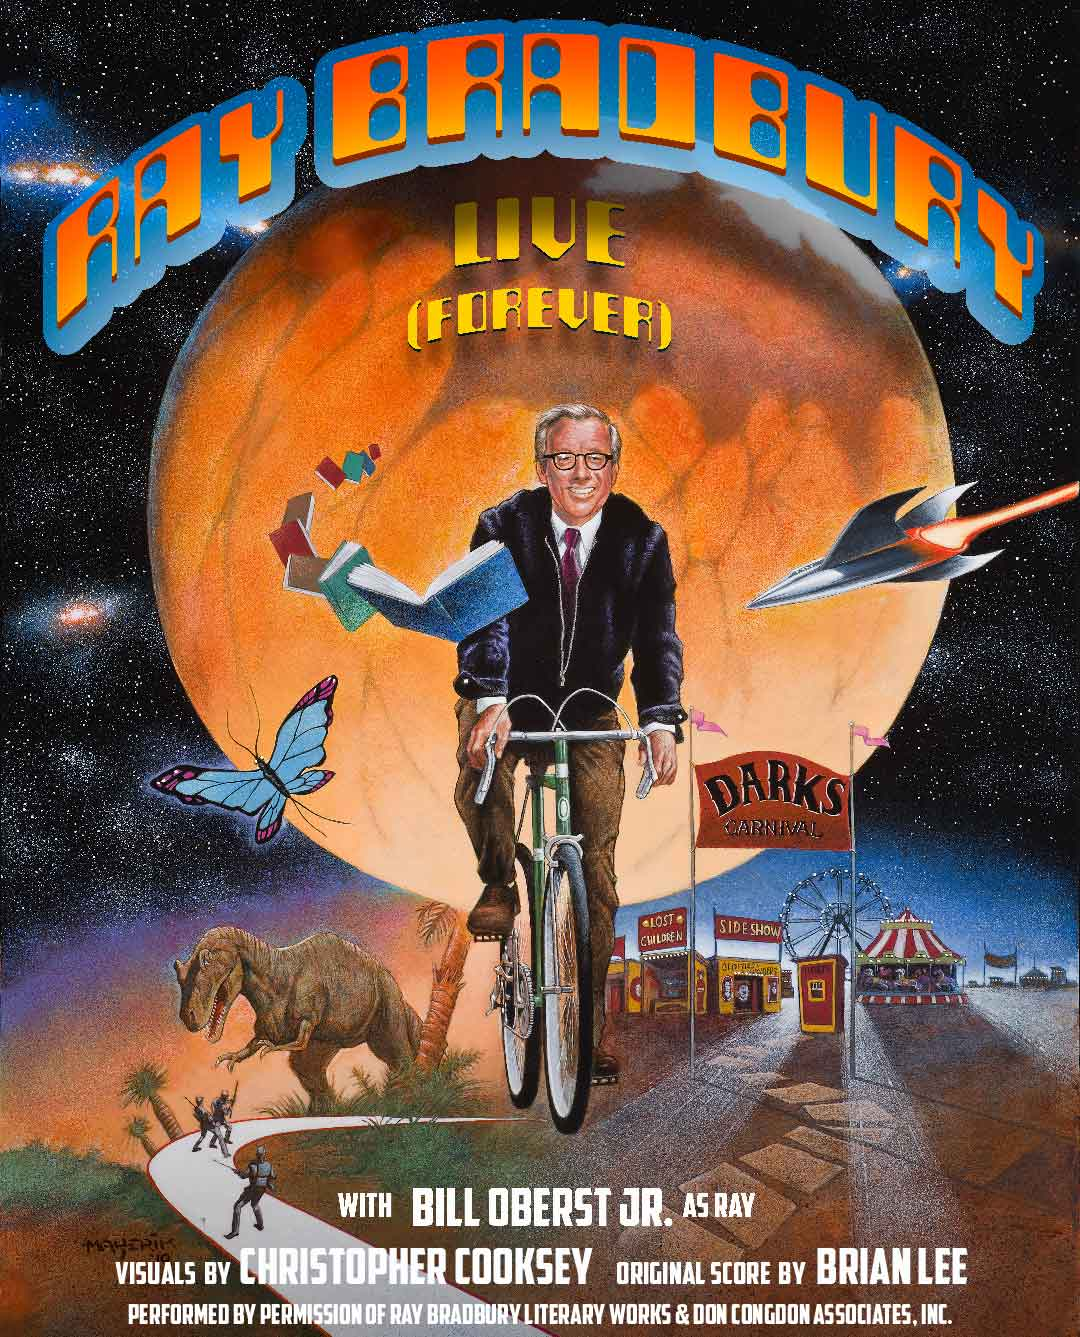 Ray Bradbury Live (forever) theatre show poster